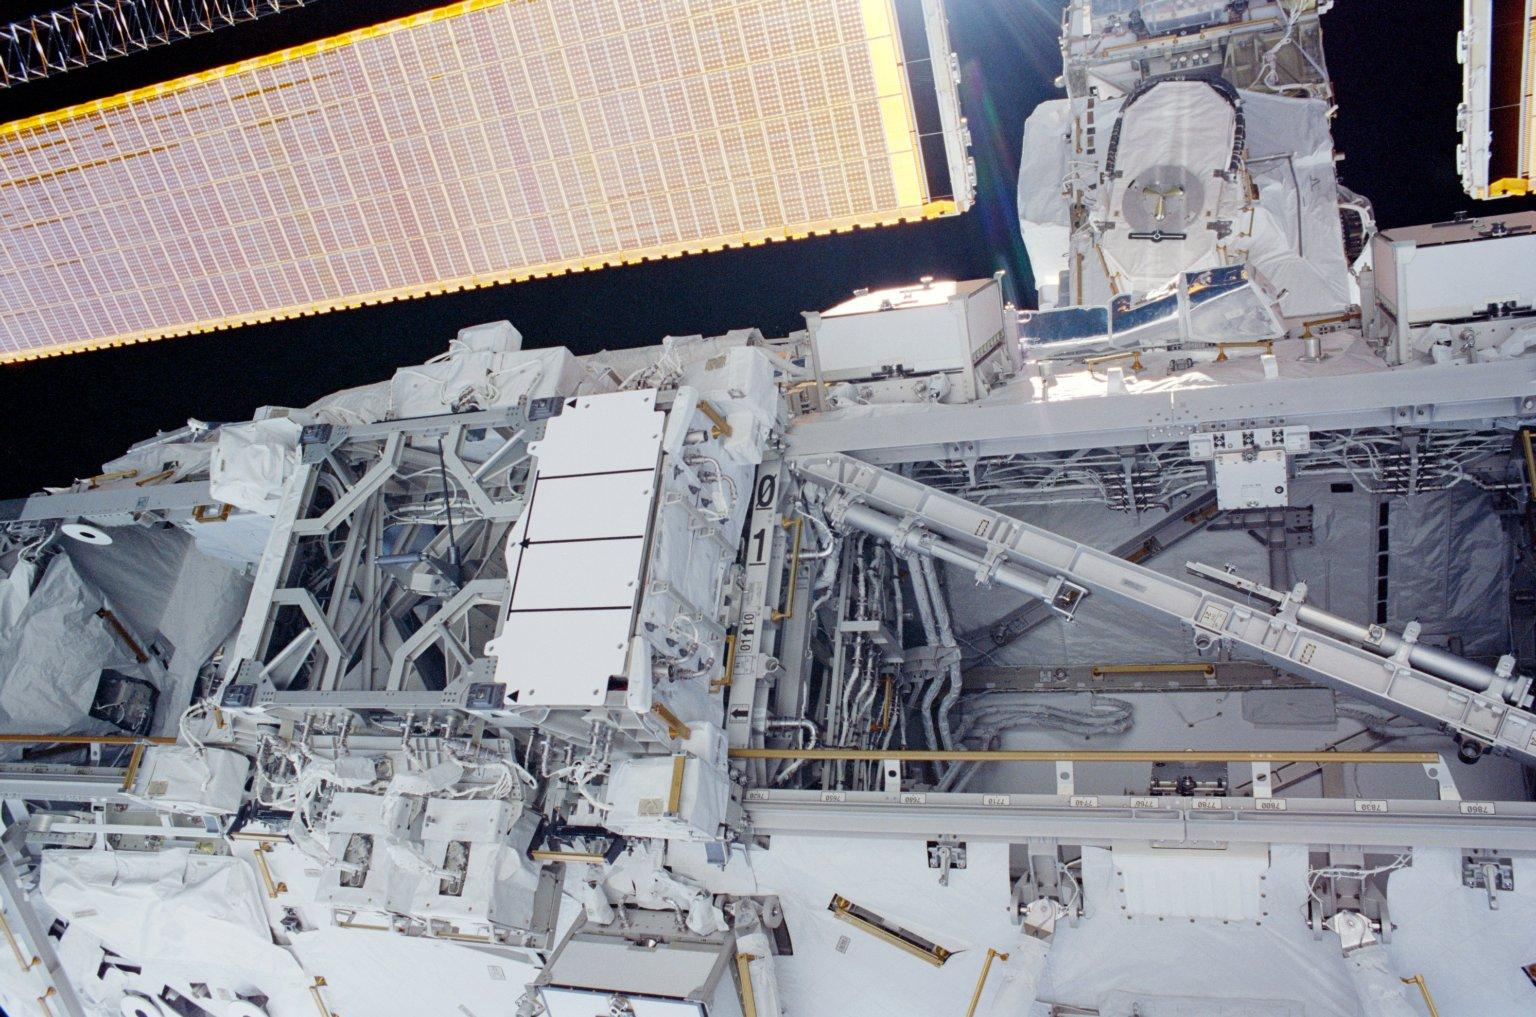 View of the starboard and center of the S0 Truss taken during the fourth EVA of STS-110